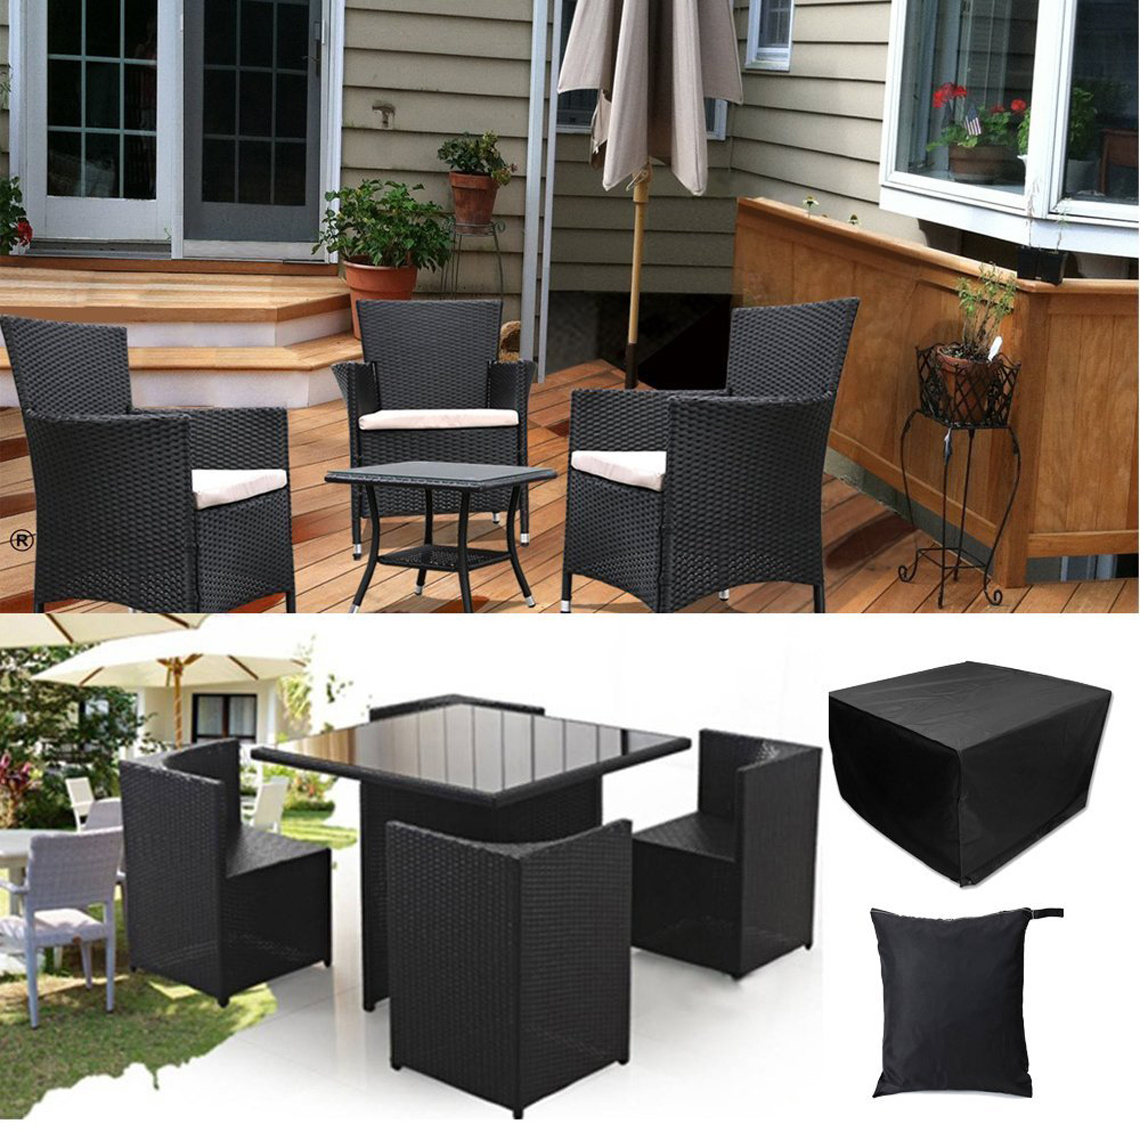 4 Seater Cube Rattan Wicker Furniture Set Outdoor Waterproof Protective UV Co